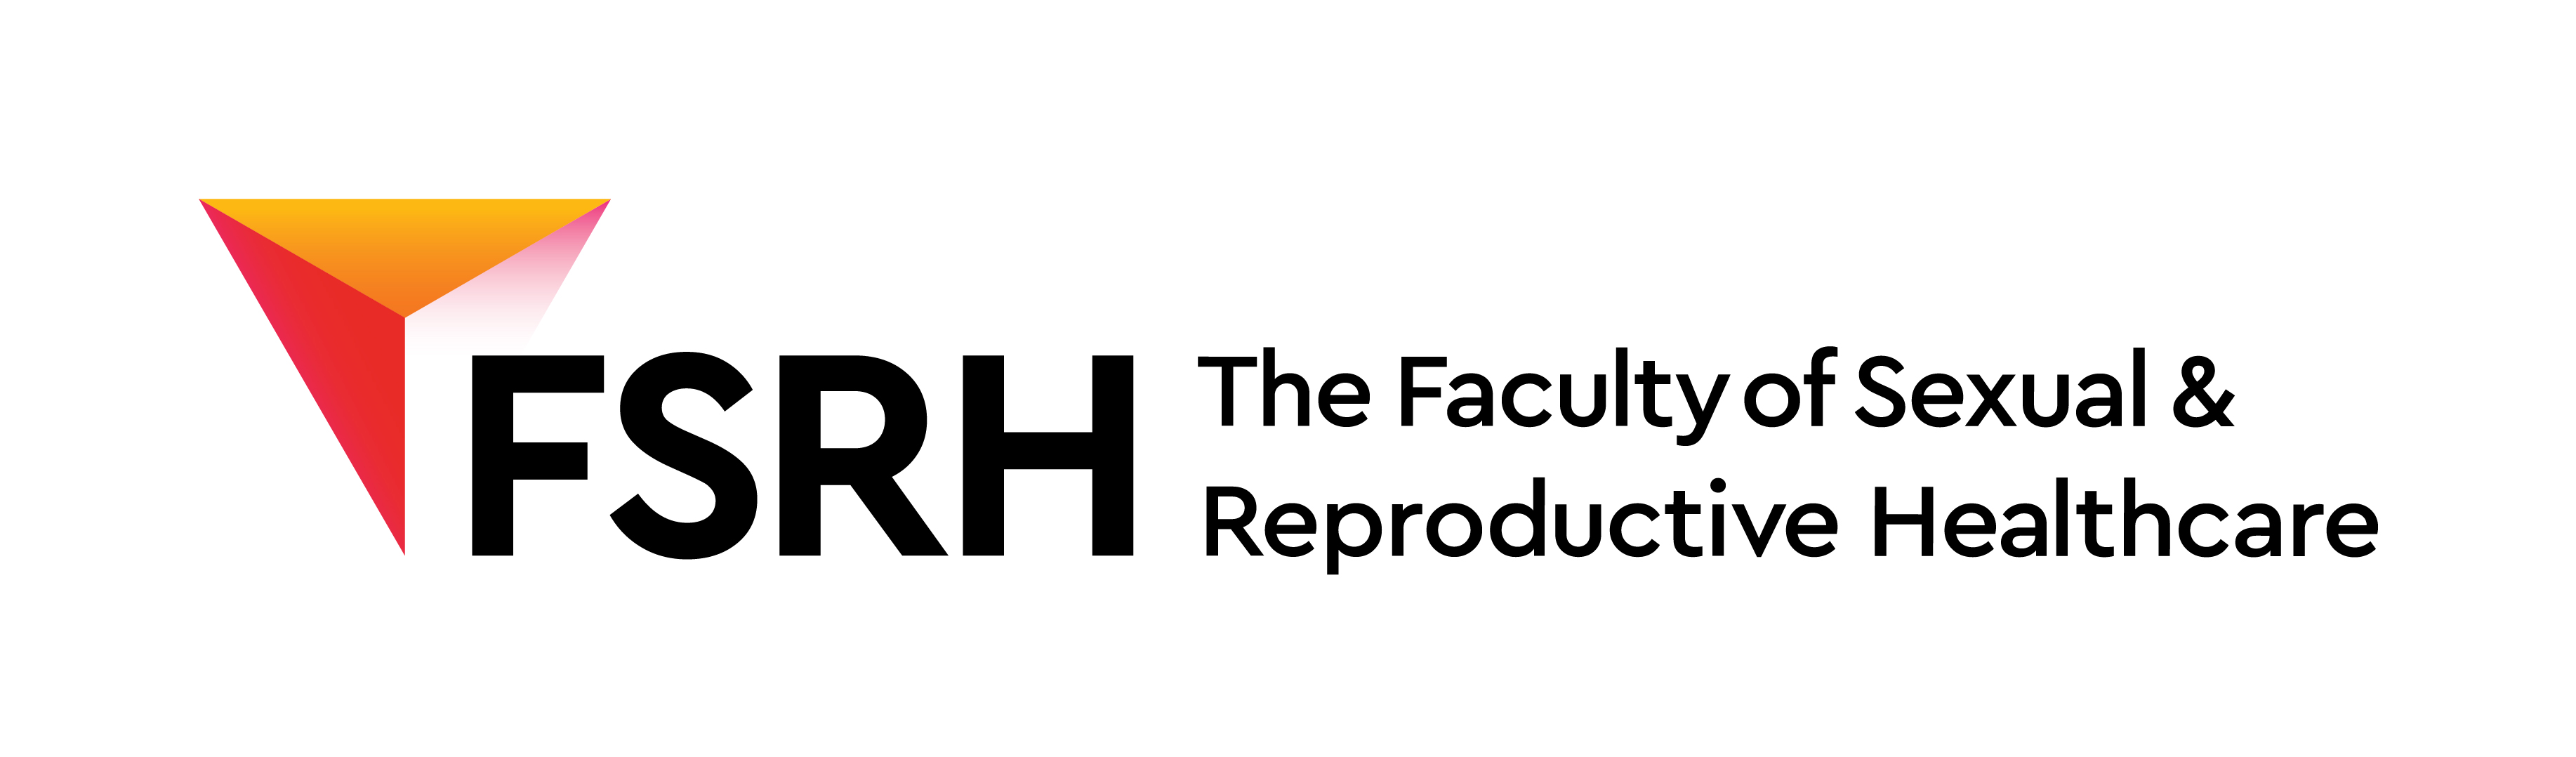 Faculty of Sexual and Reproductive Healthcare